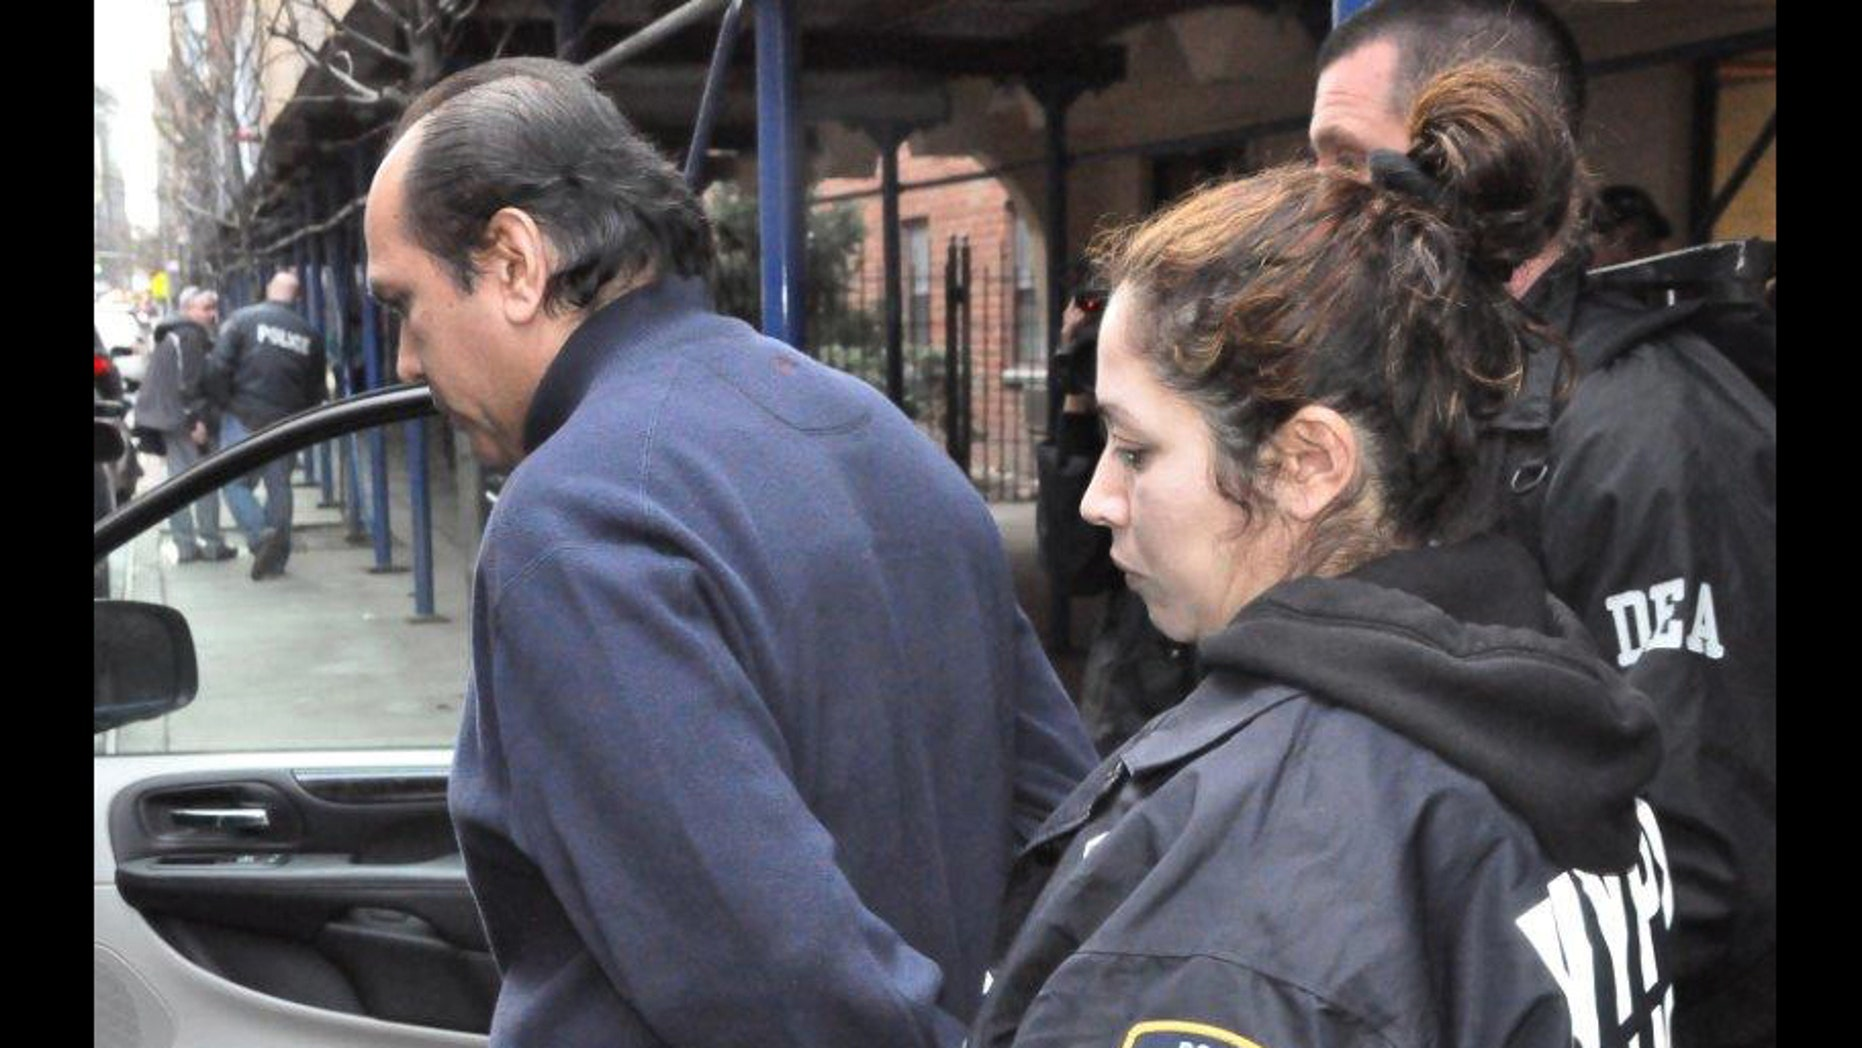 Dr. Hector Castro being arrested.